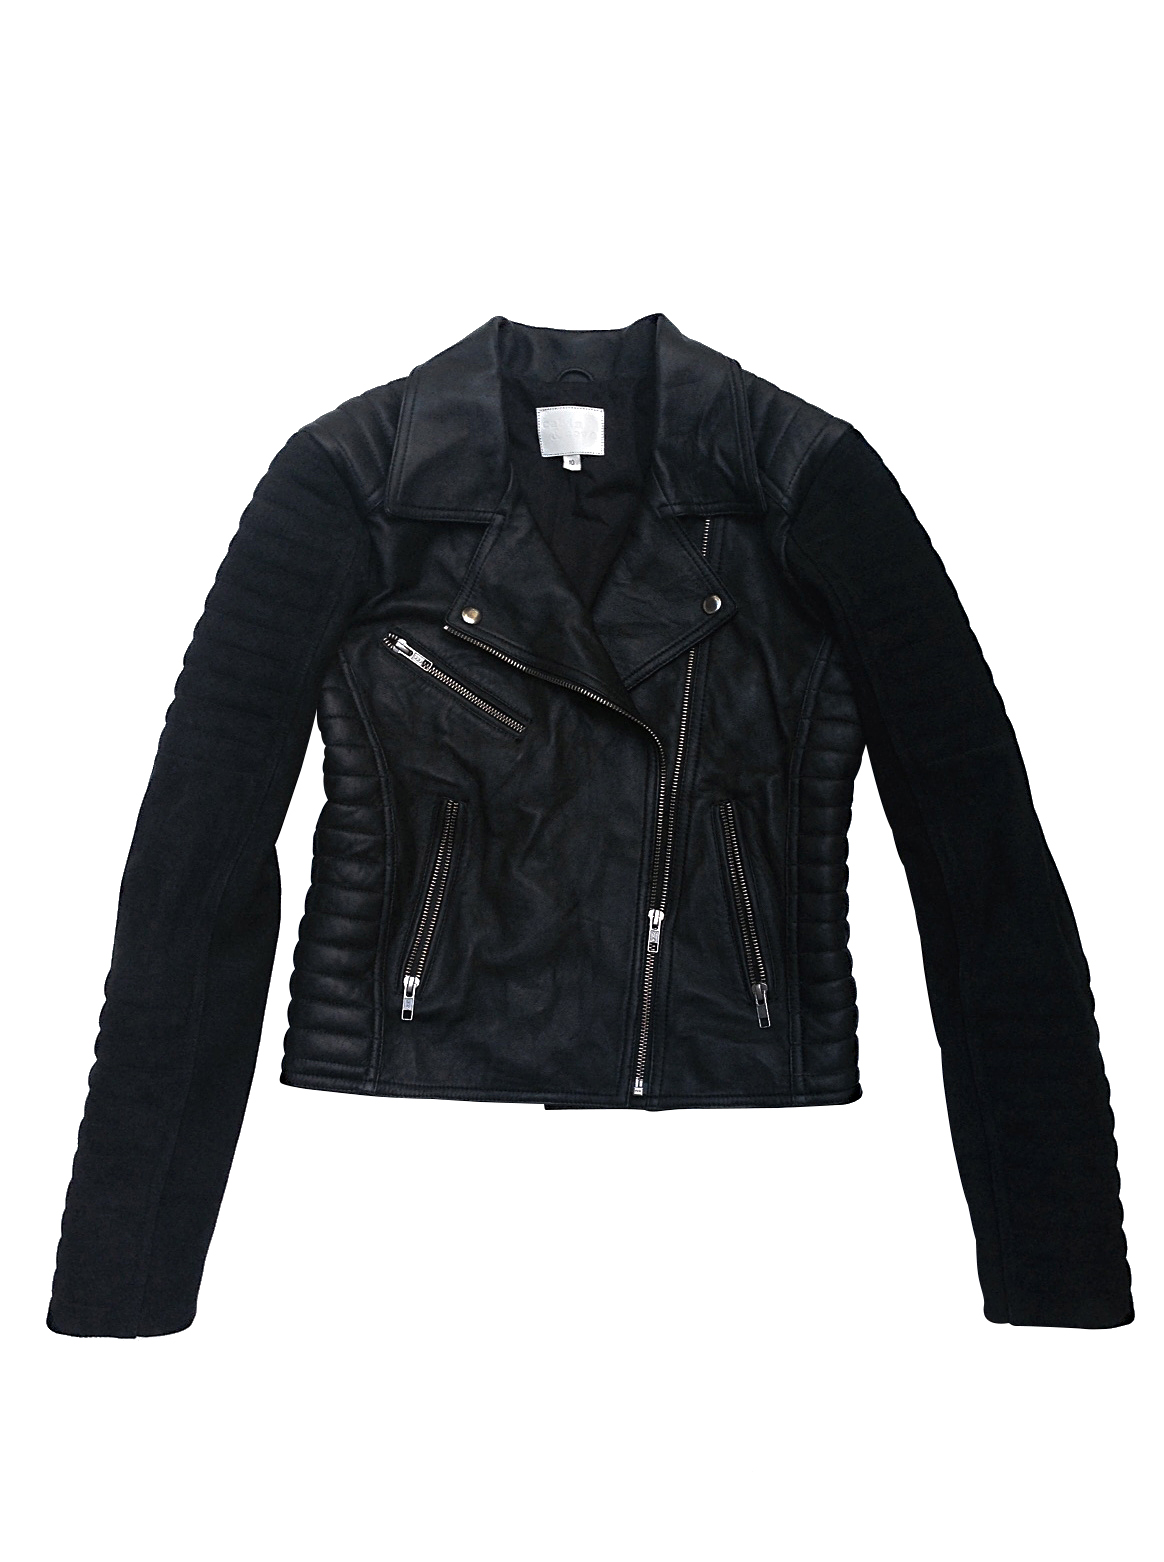 cabin-and-cove-fuse-leather-jacket-winter.jpeg